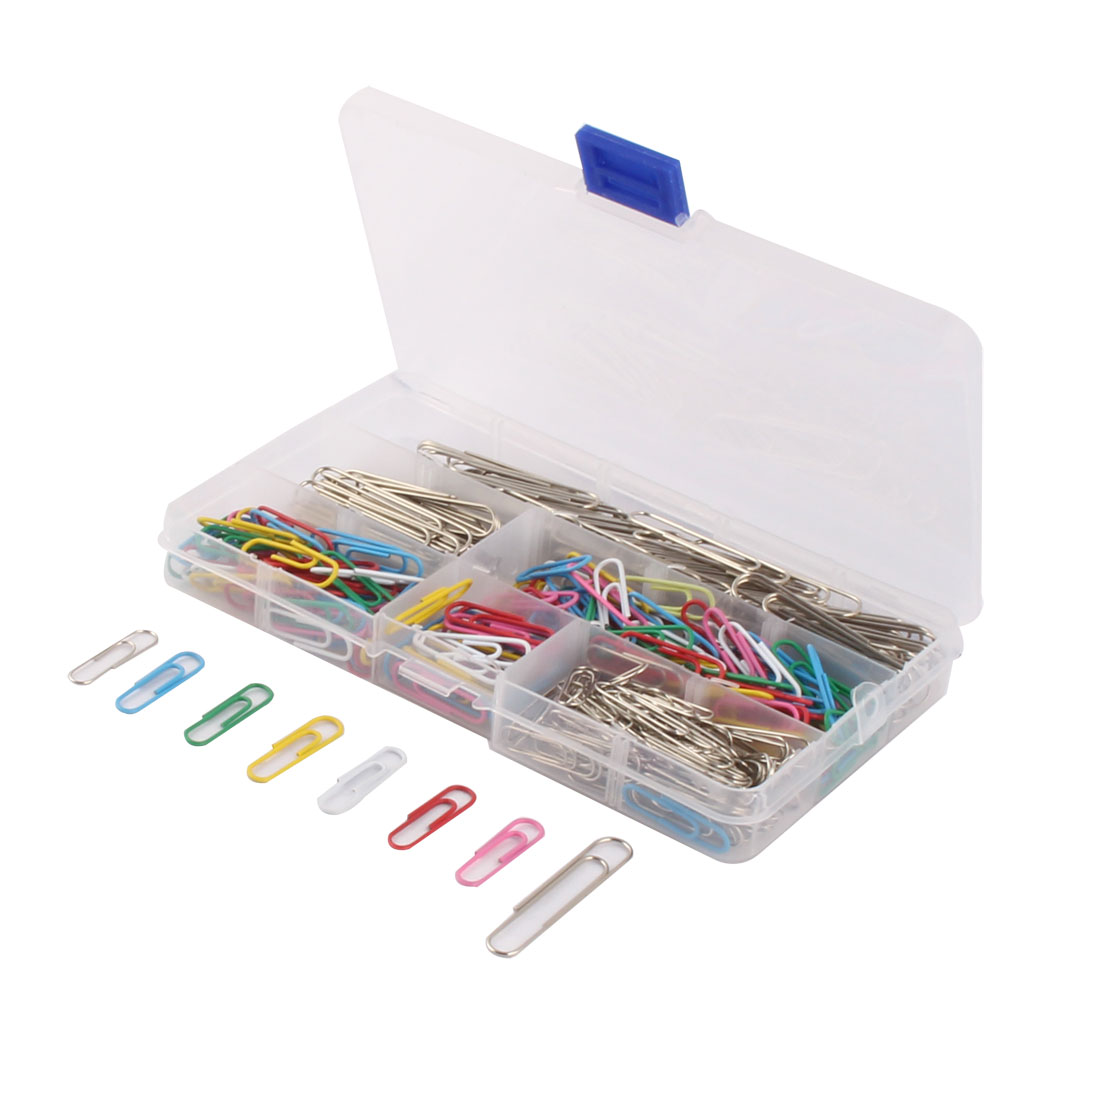 Office Plastic 6 Slot Case Box Organizer Paper Clips Set Assorted Color 340 PCS